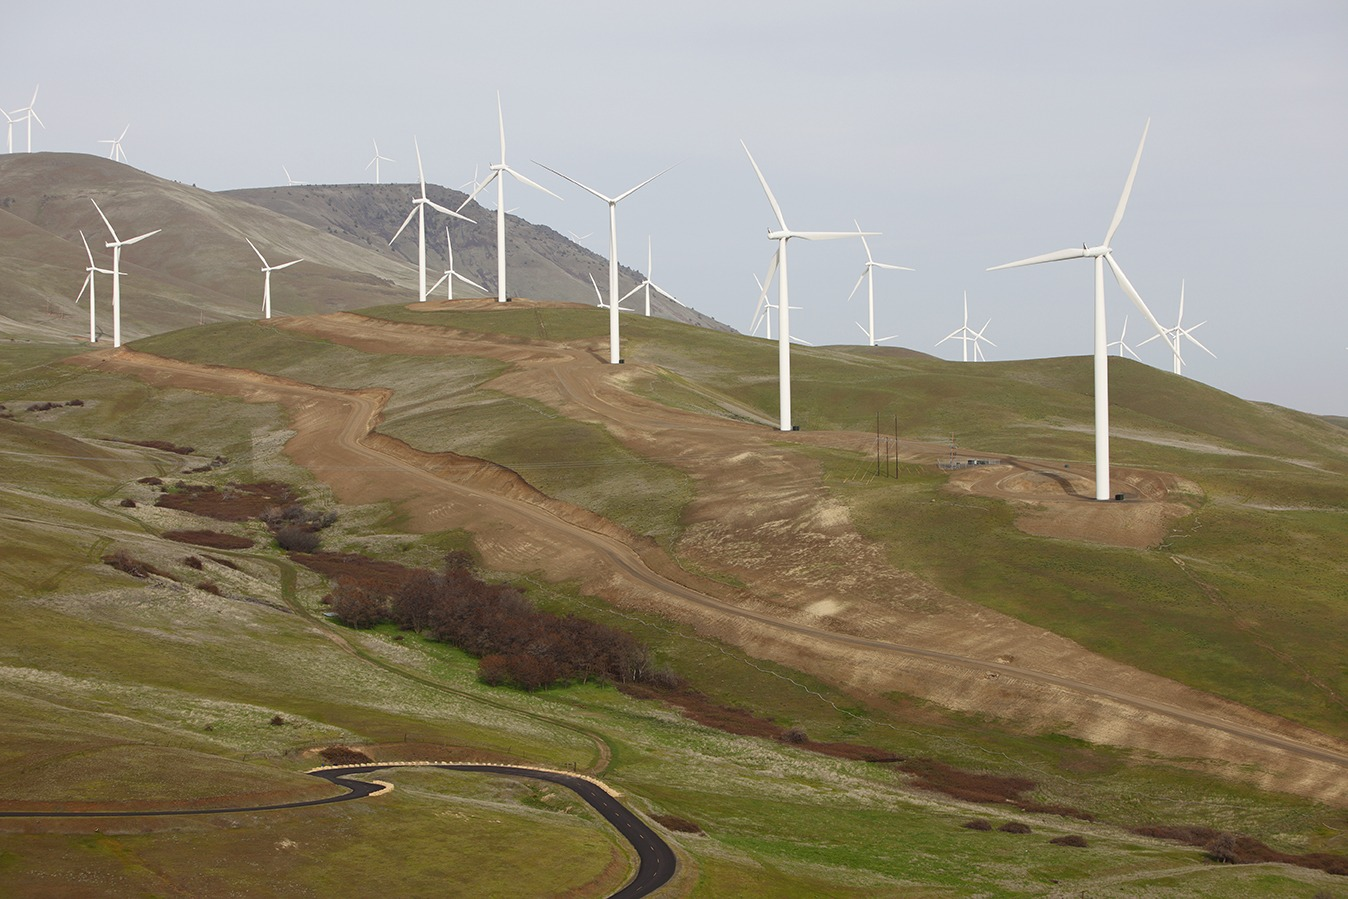 PLANNING INSIGHT: ONSHORE WIND BACK ON THE AGENDA?